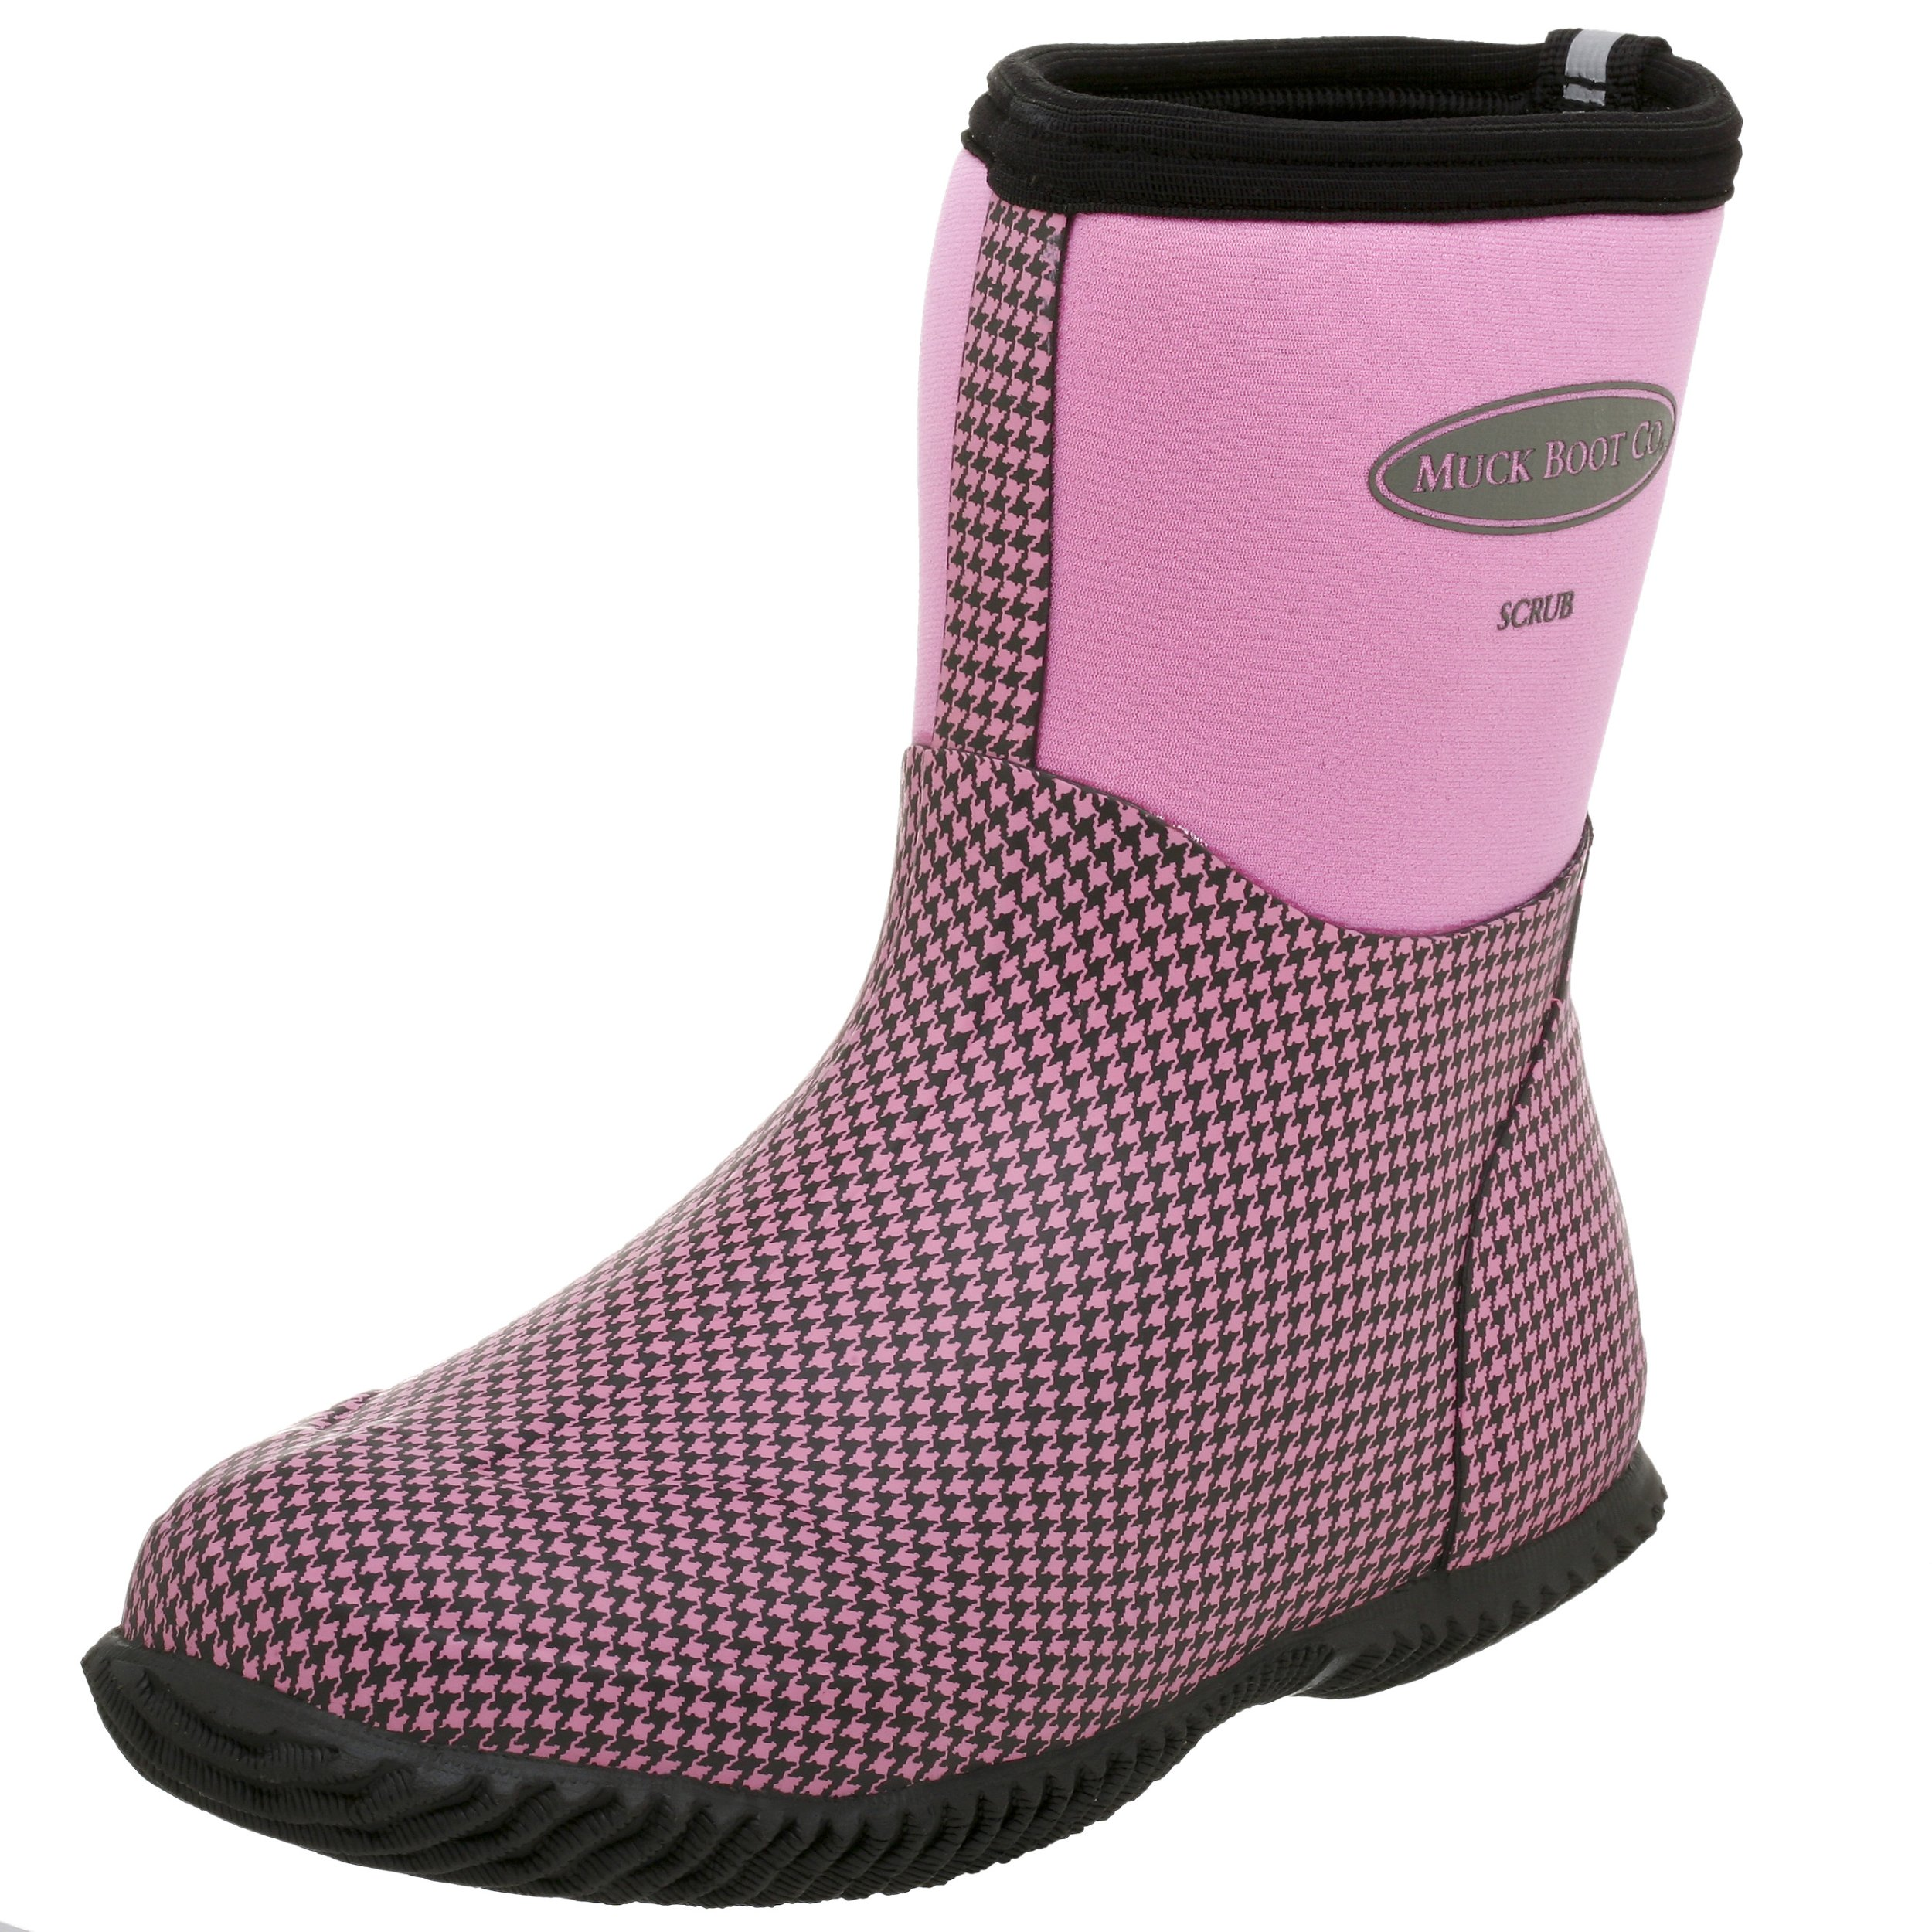 The Original MuckBoots Women's Scrub Boot,Dusty Pink Houndstooth,4 M US